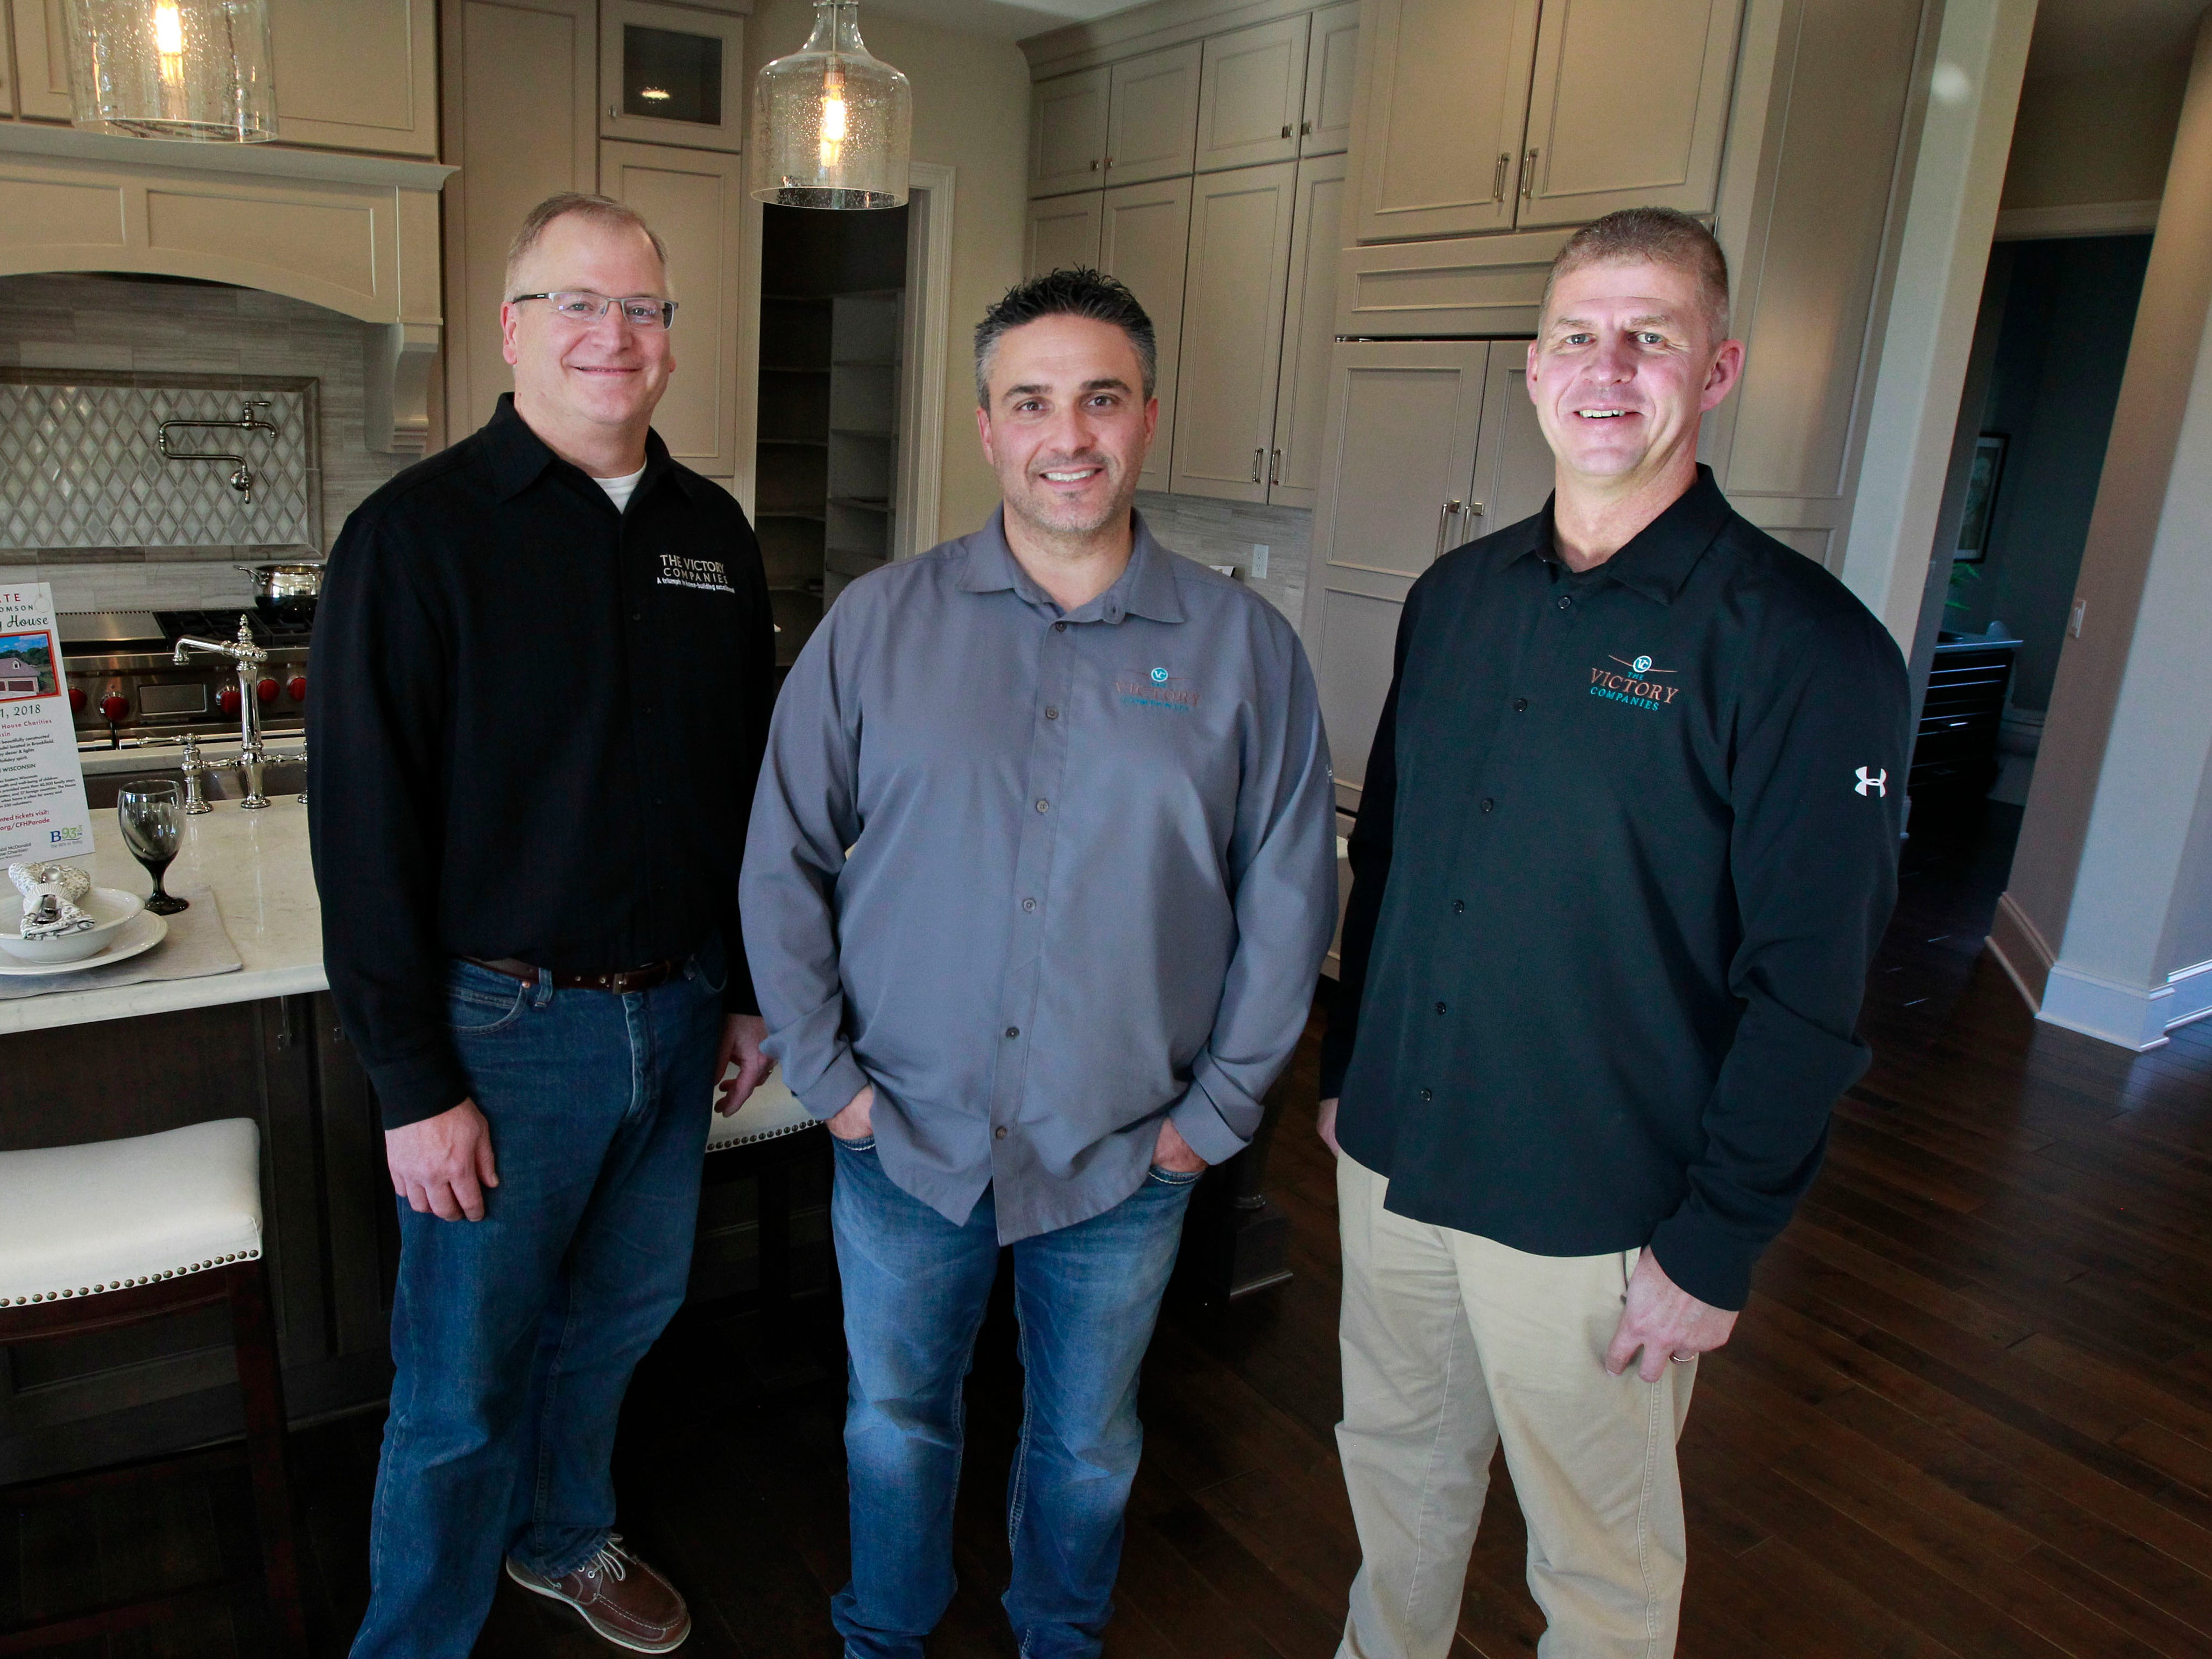 Owners of the Christmas Fantasy House from The Victory Companies are (from left) David Pluim, vice president; David Roembke, vice president of sales; and John Stoker, president.